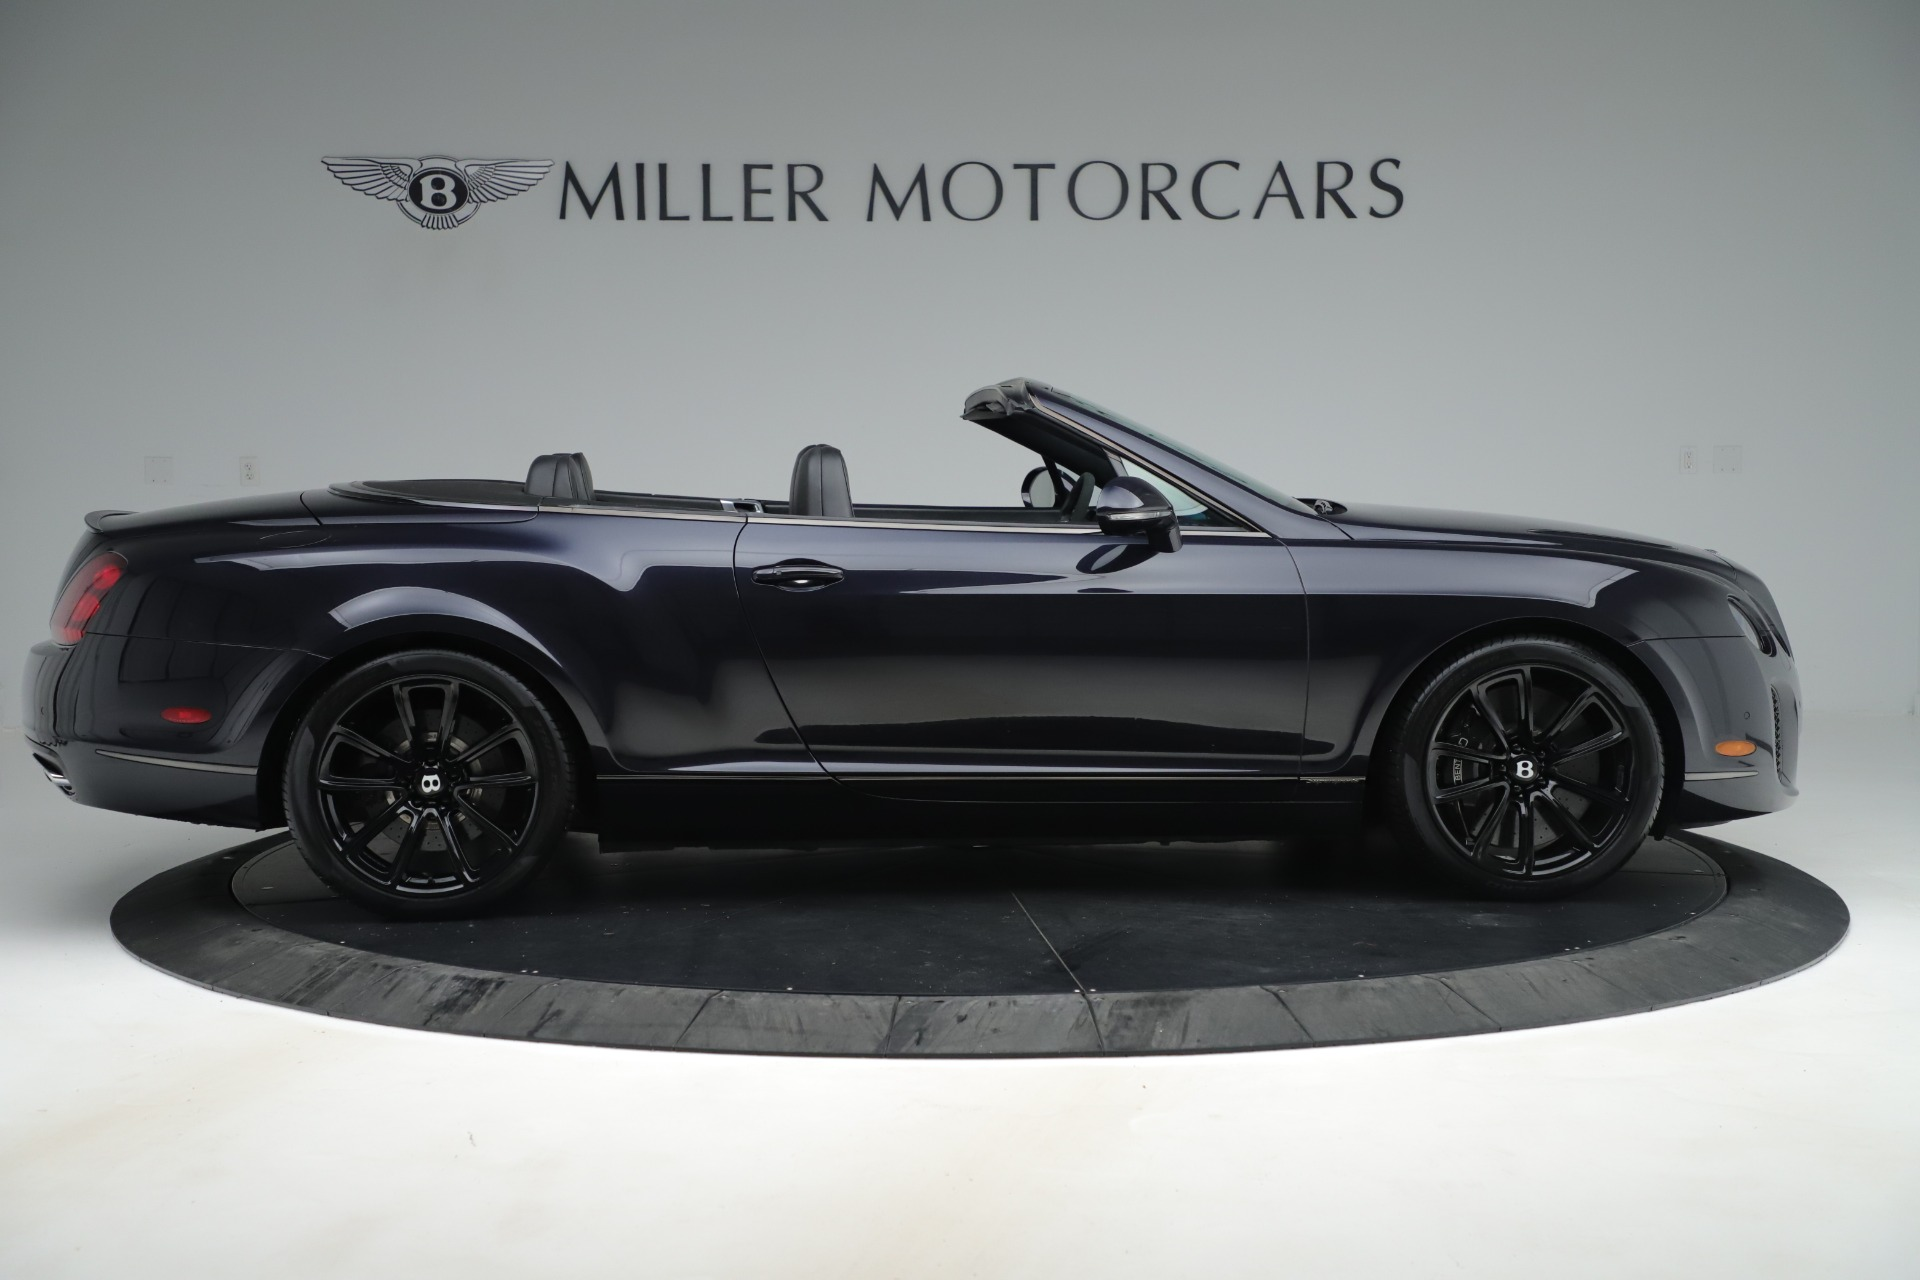 Used 2012 Bentley Continental GT Supersports For Sale In Westport, CT 3214_p9